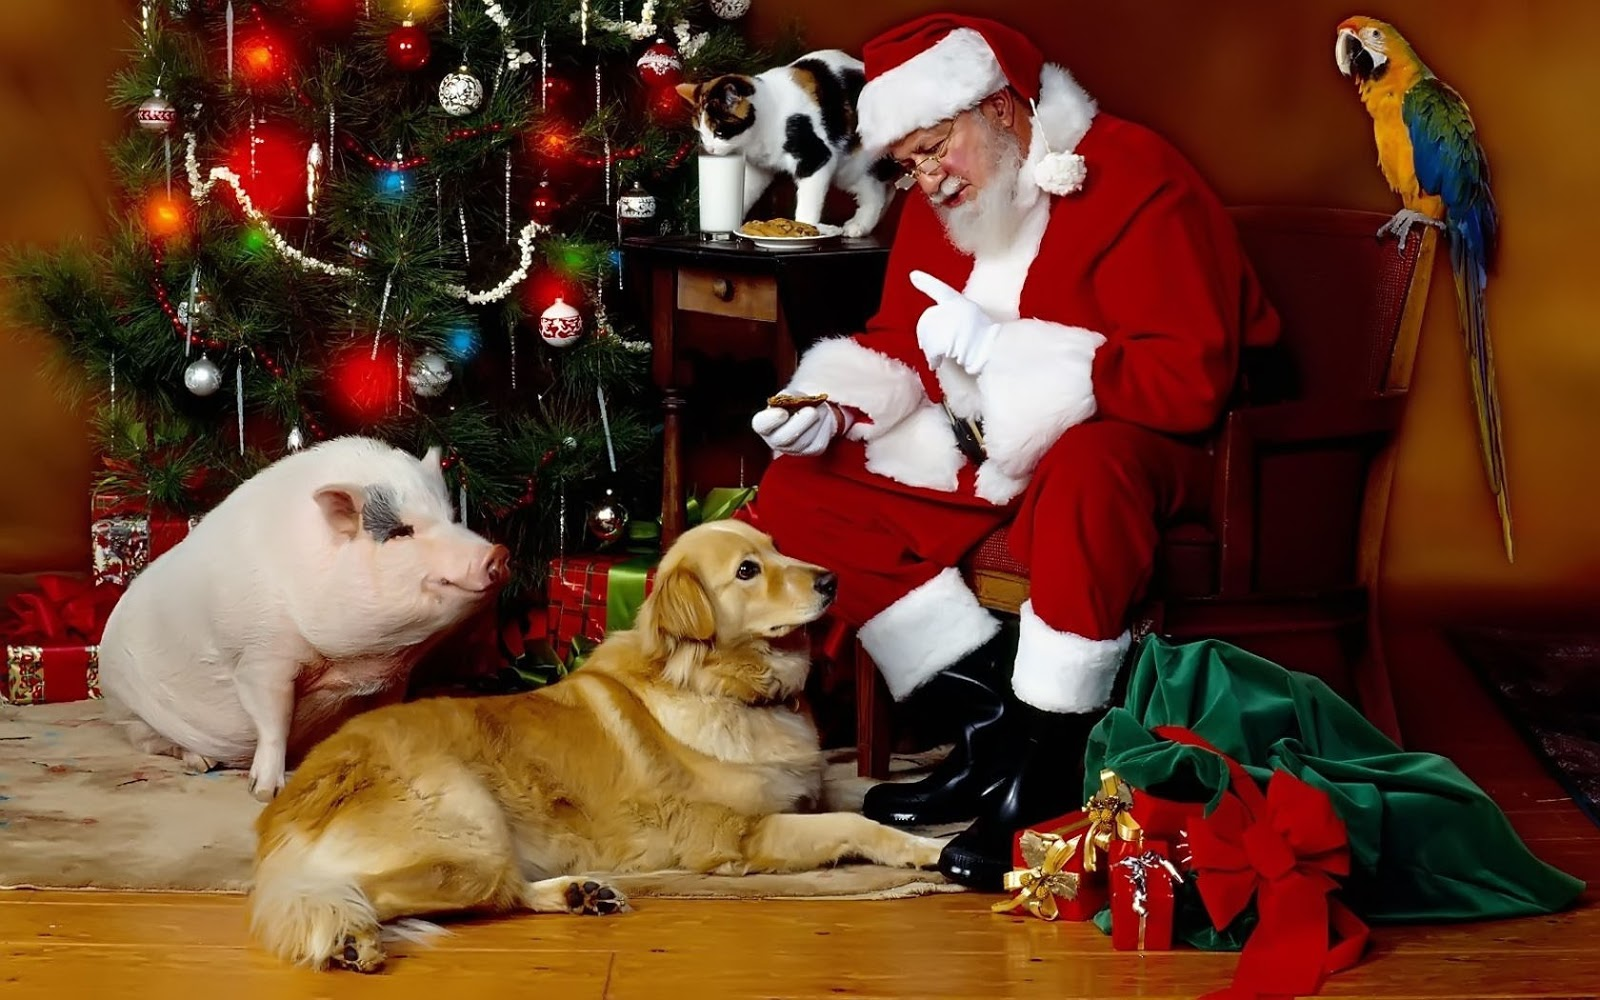 #SantaClaus #pig #dog #christmastree #Christmas #Christmasbackground.- Santa Claus, pig, dog, christmas tree